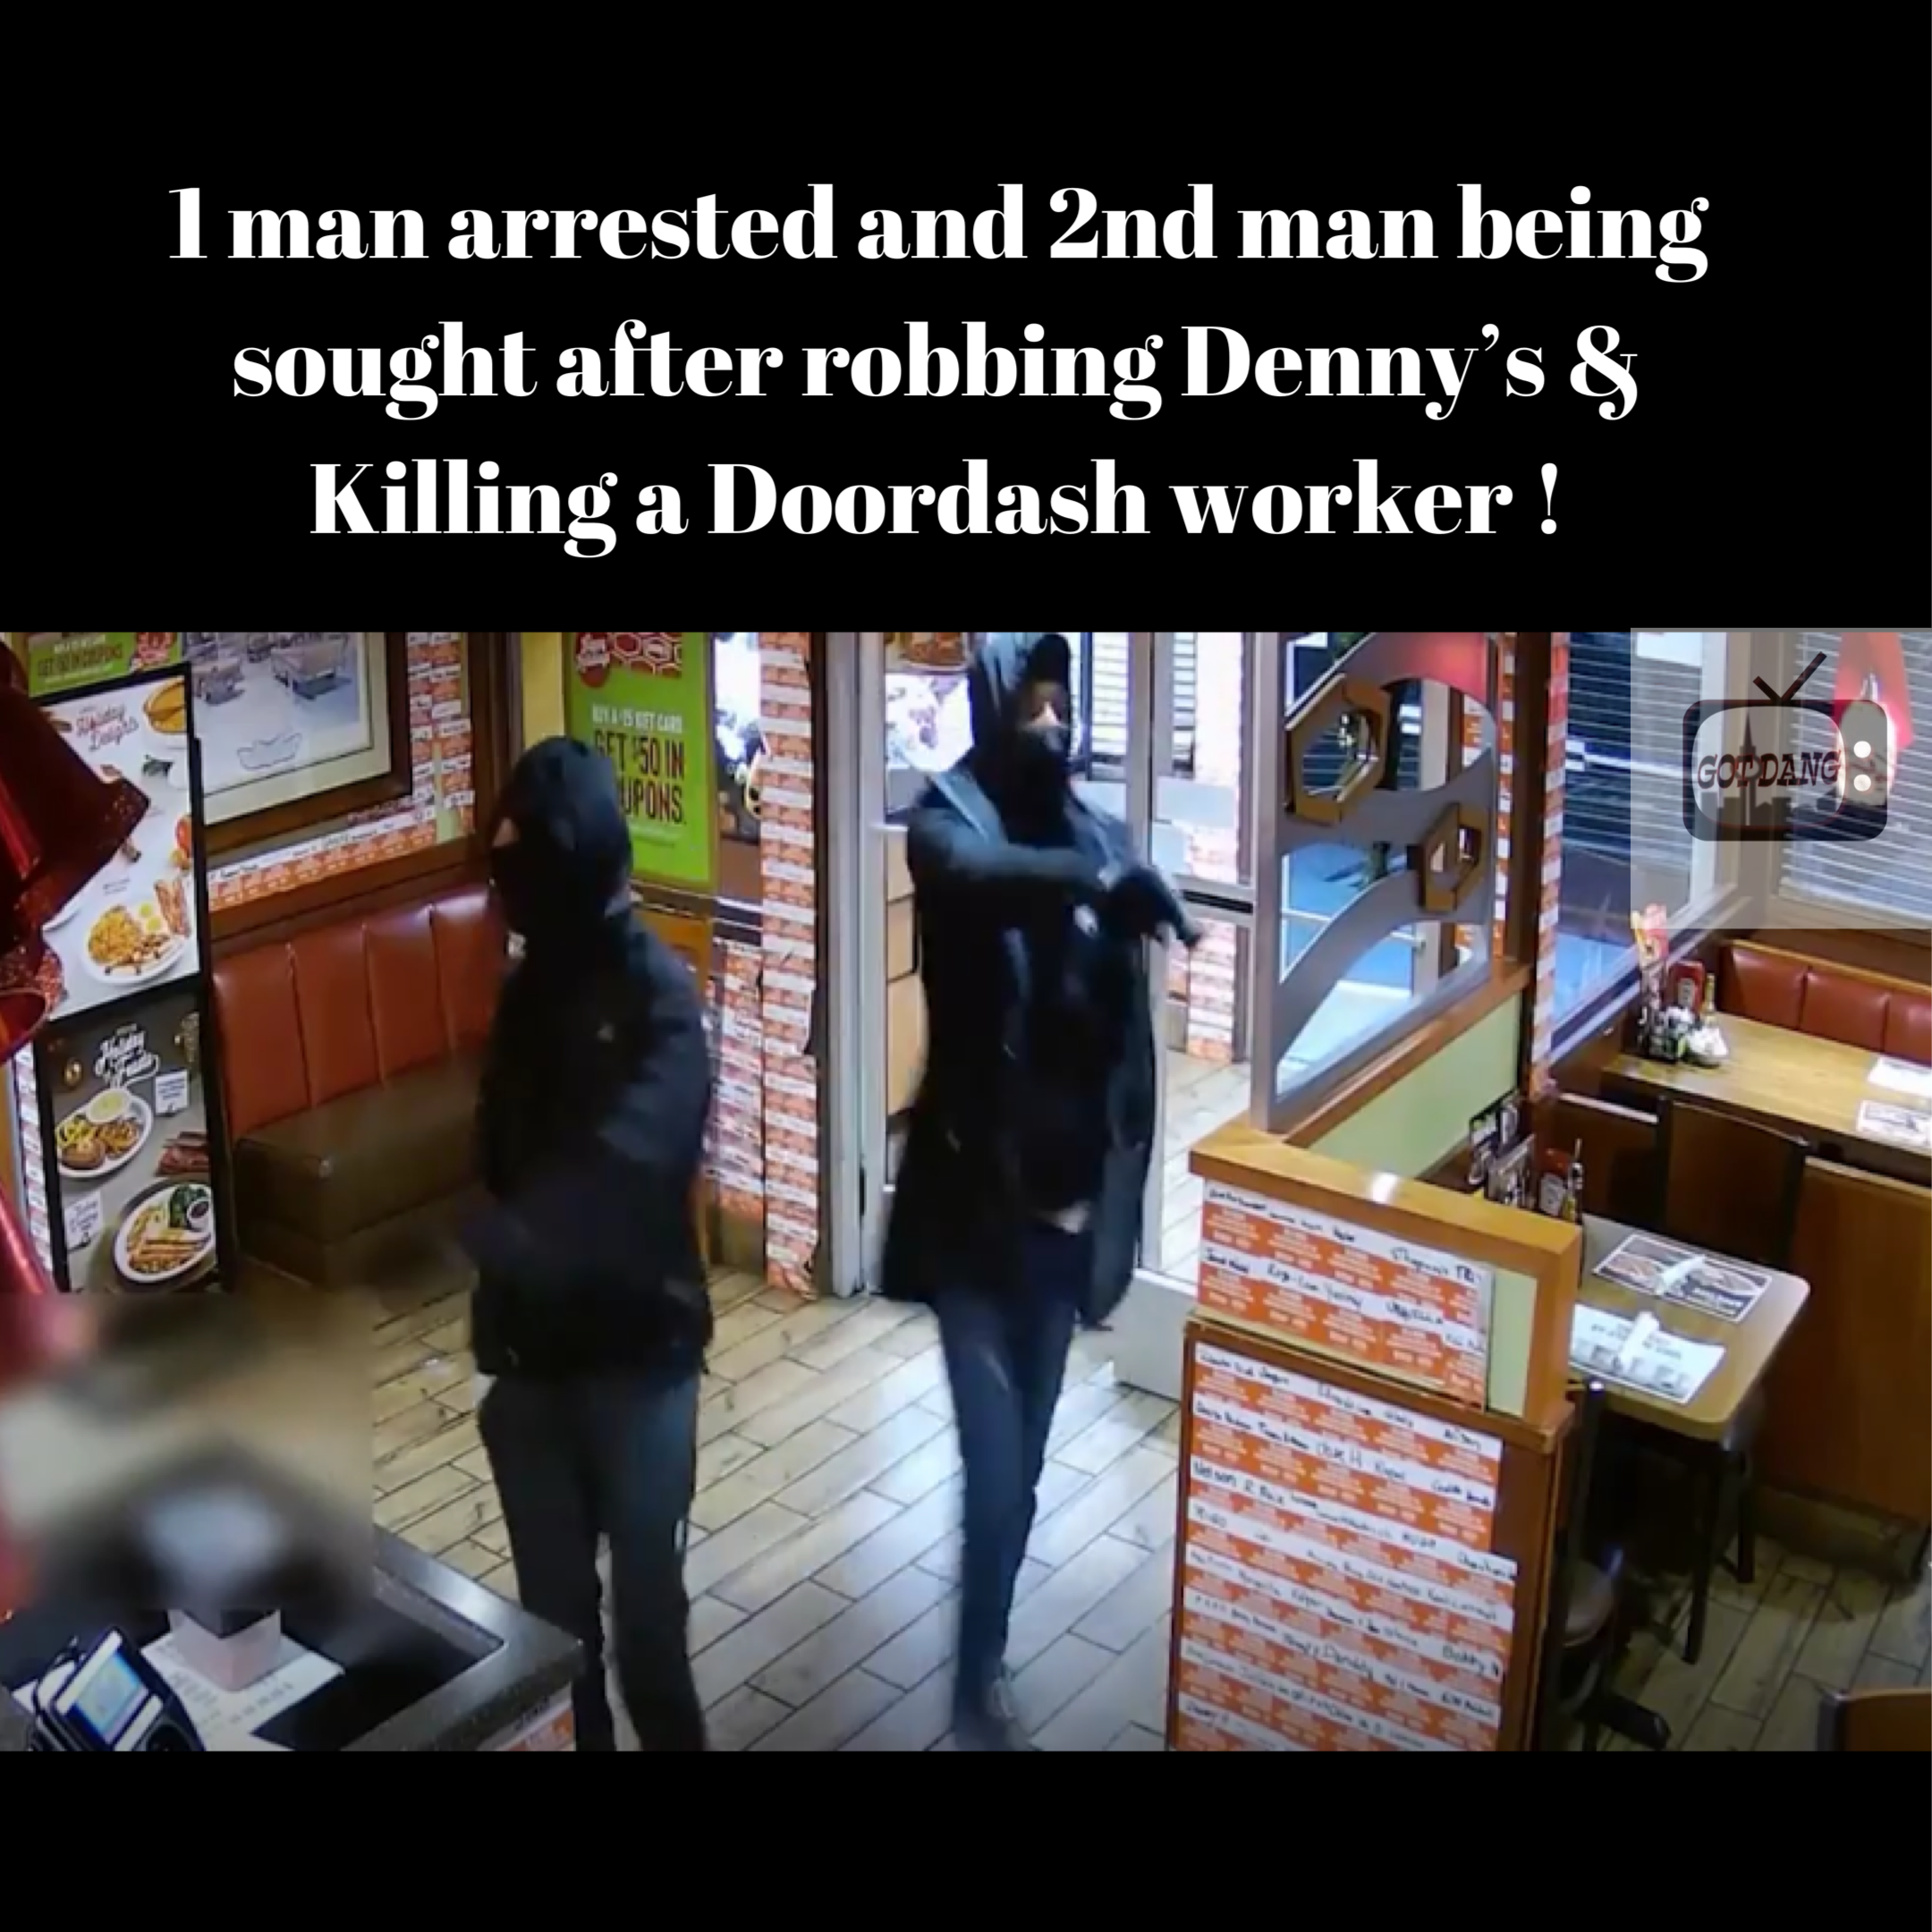 Suspects who killed a doordash While robbing Dennys 1 arrested 2nd identified !